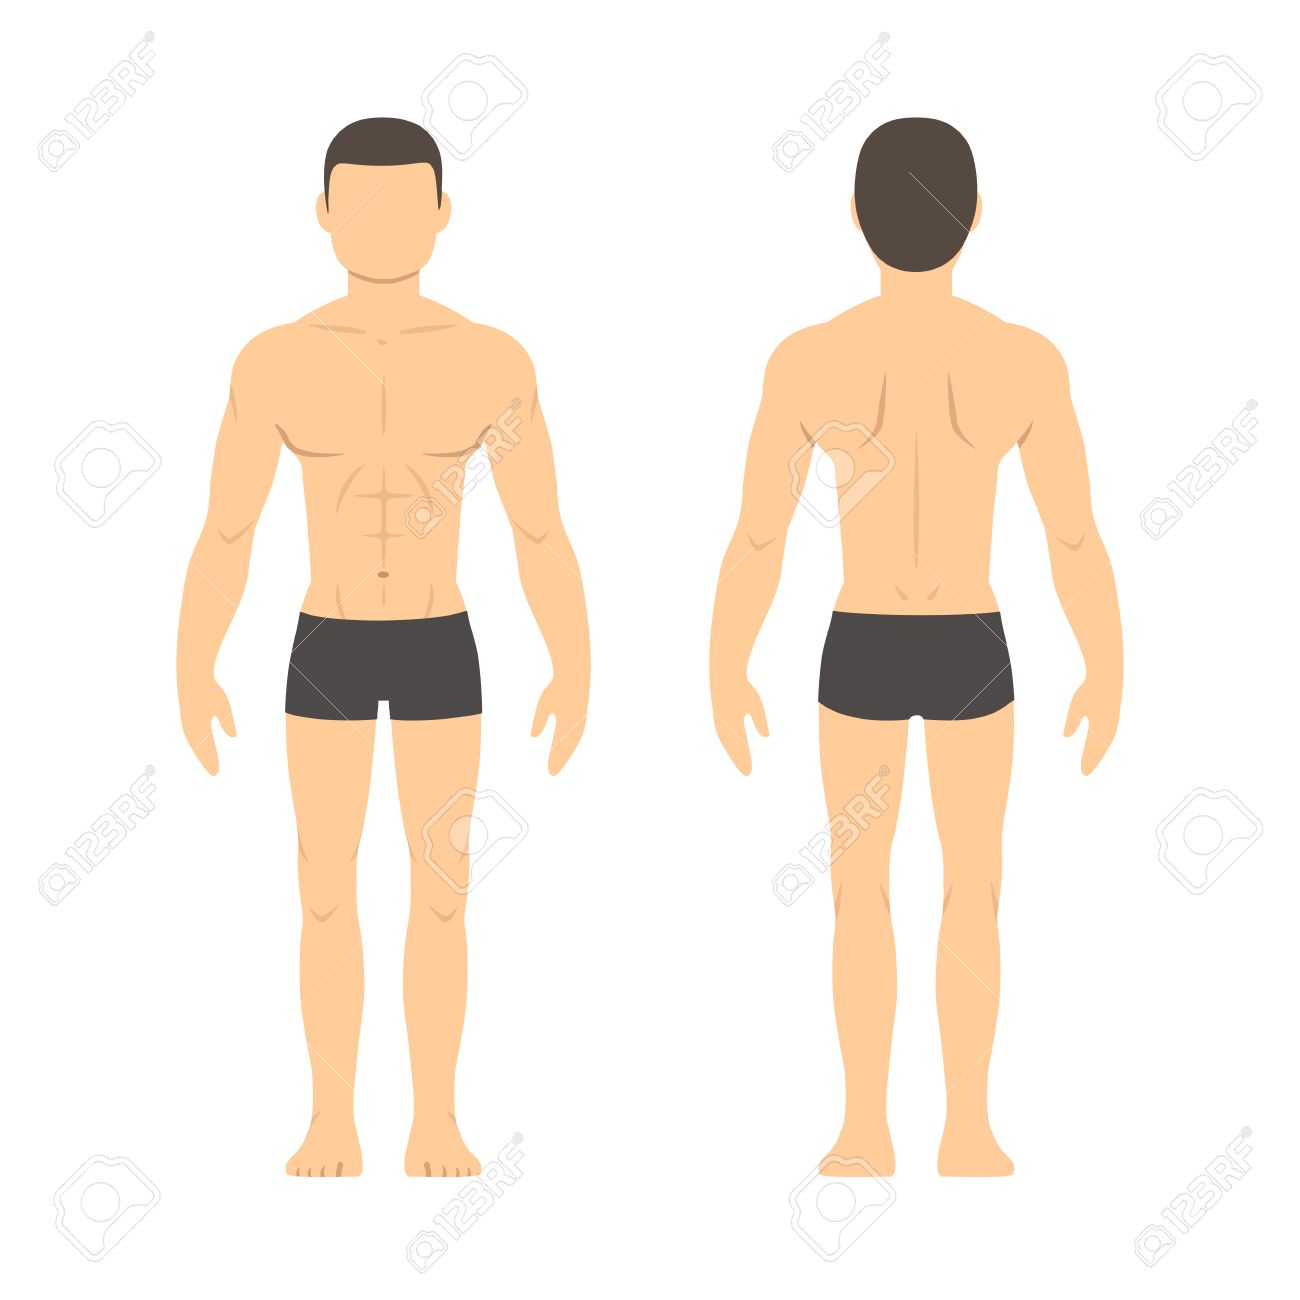 Athletic male body chart. Muscular man body from front and back. Isolated health and fitness illustration. - 53372784